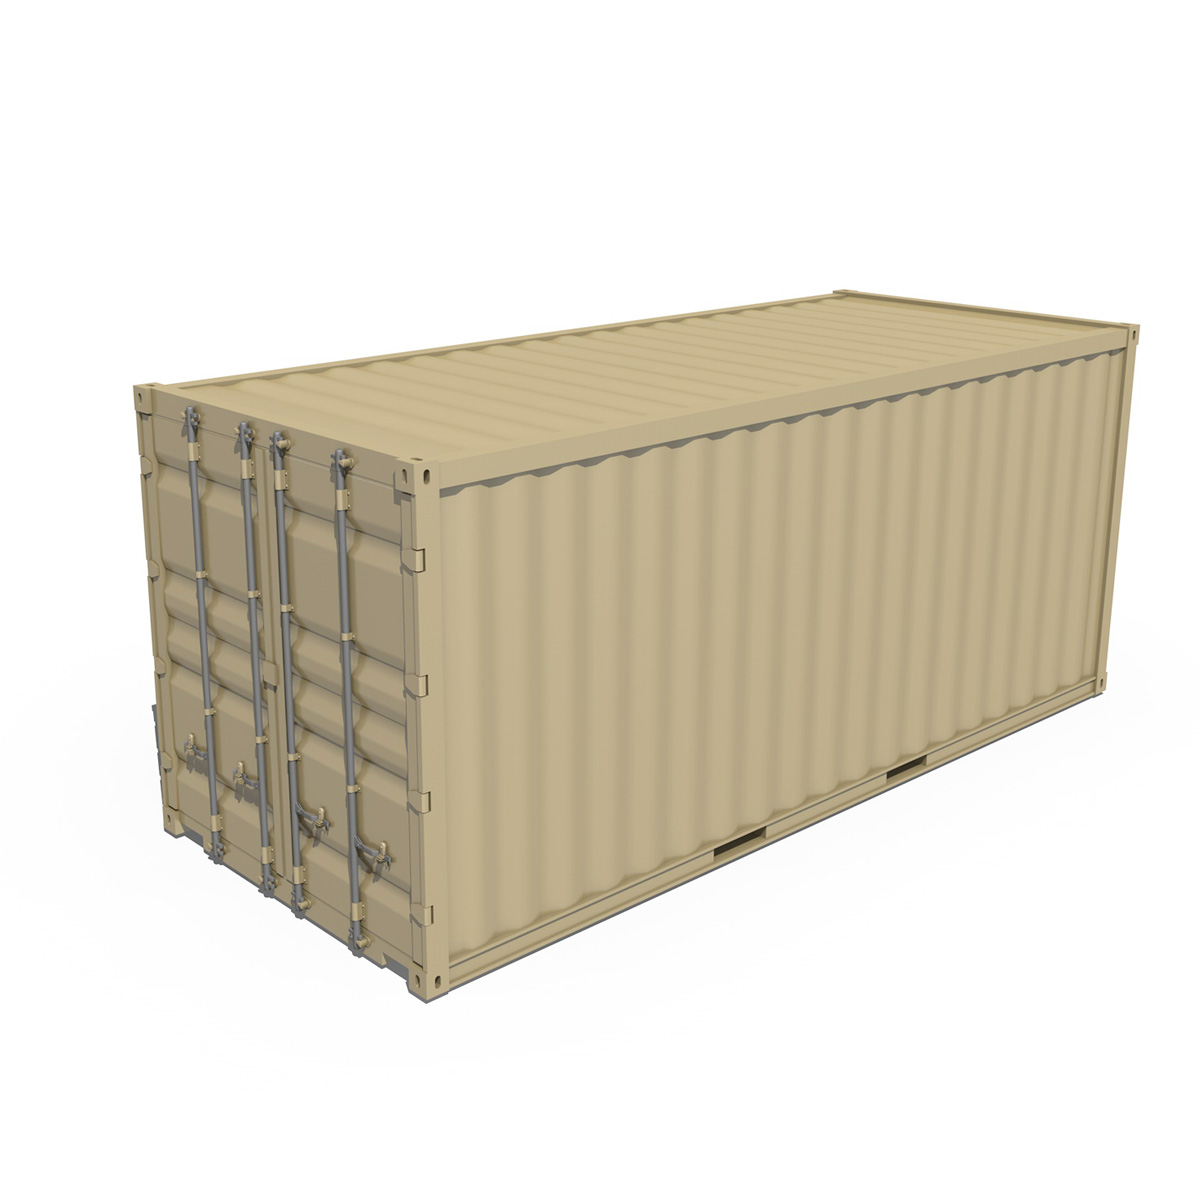 20ft shipping container 3d model 3ds fbx c4d lwo obj 252256